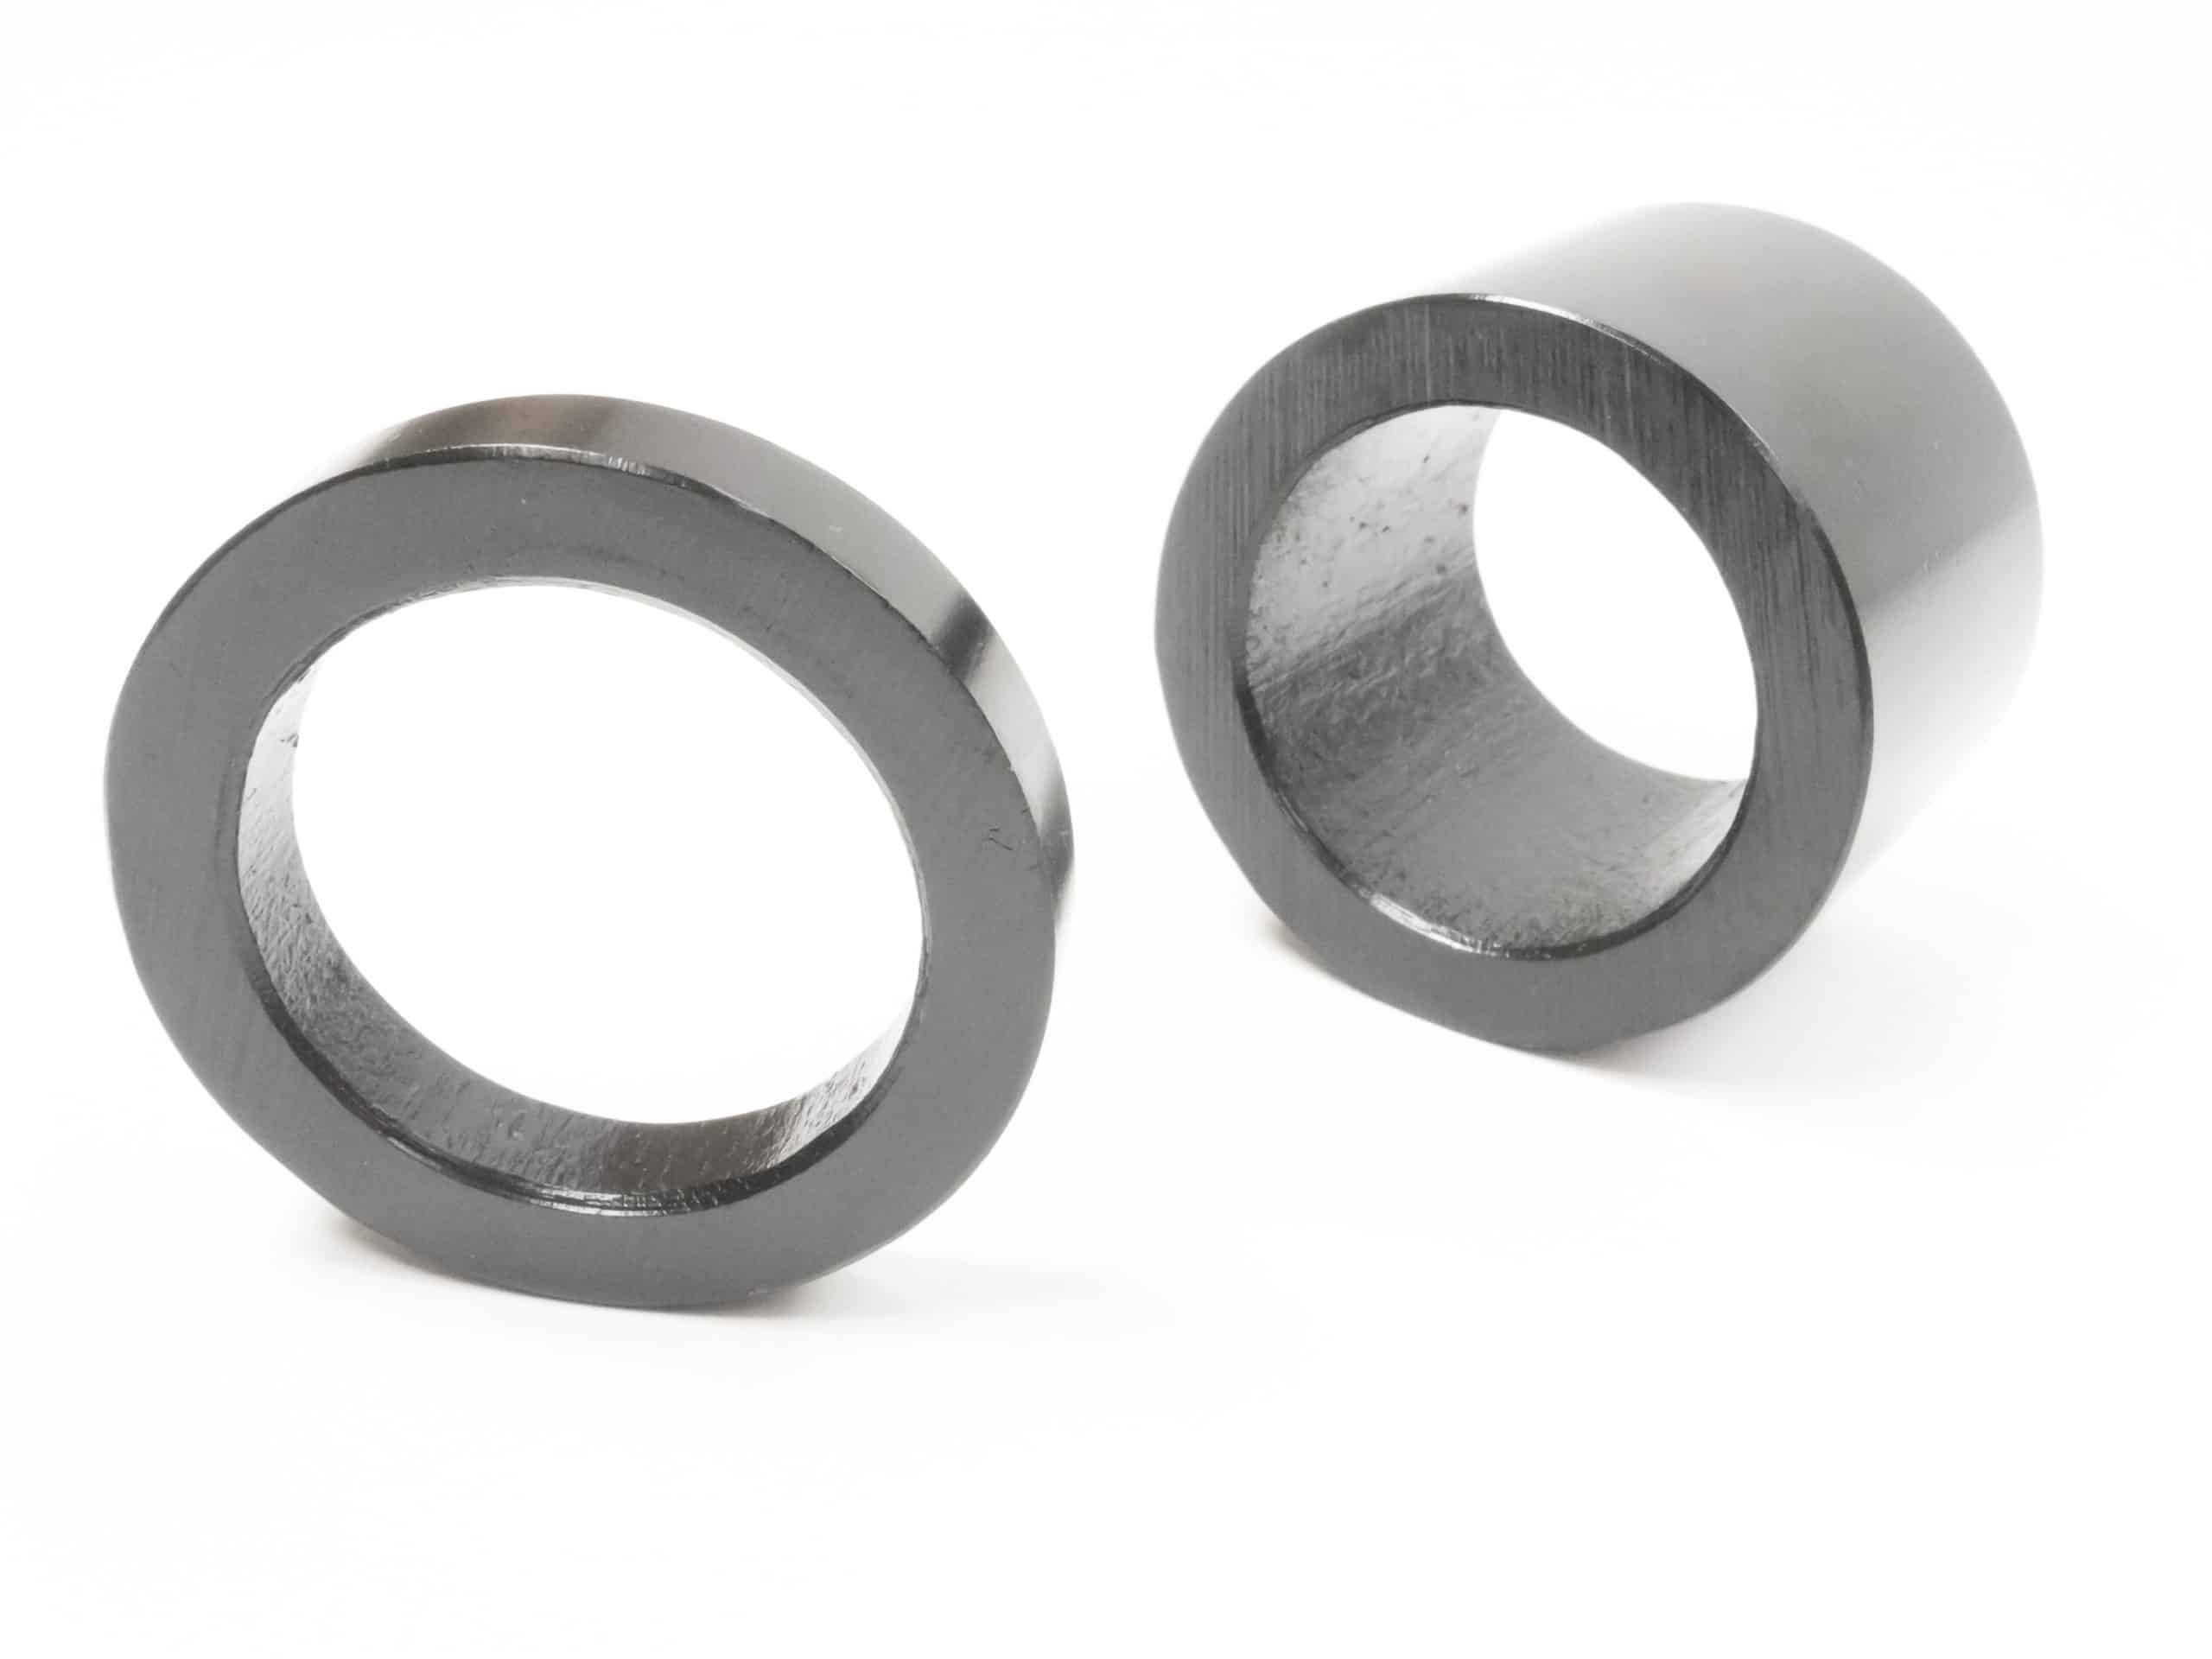 distance-rings-for-treehouse-screw-2